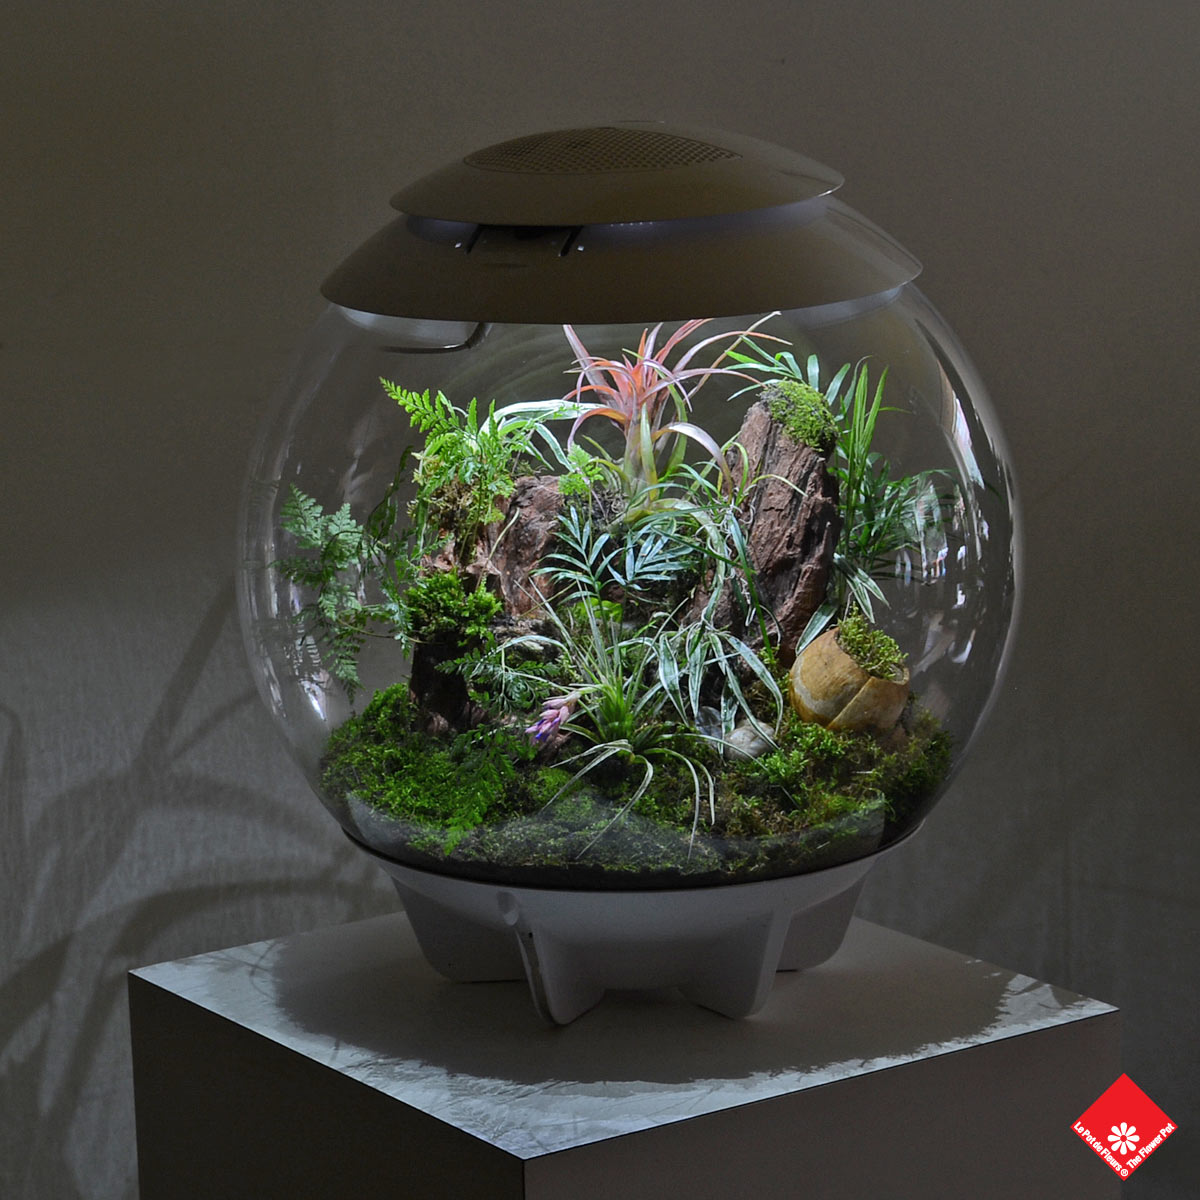 Bring the Montreal Biodôme home with this micro environment in a globe. Choose yours from The Flower Pot.